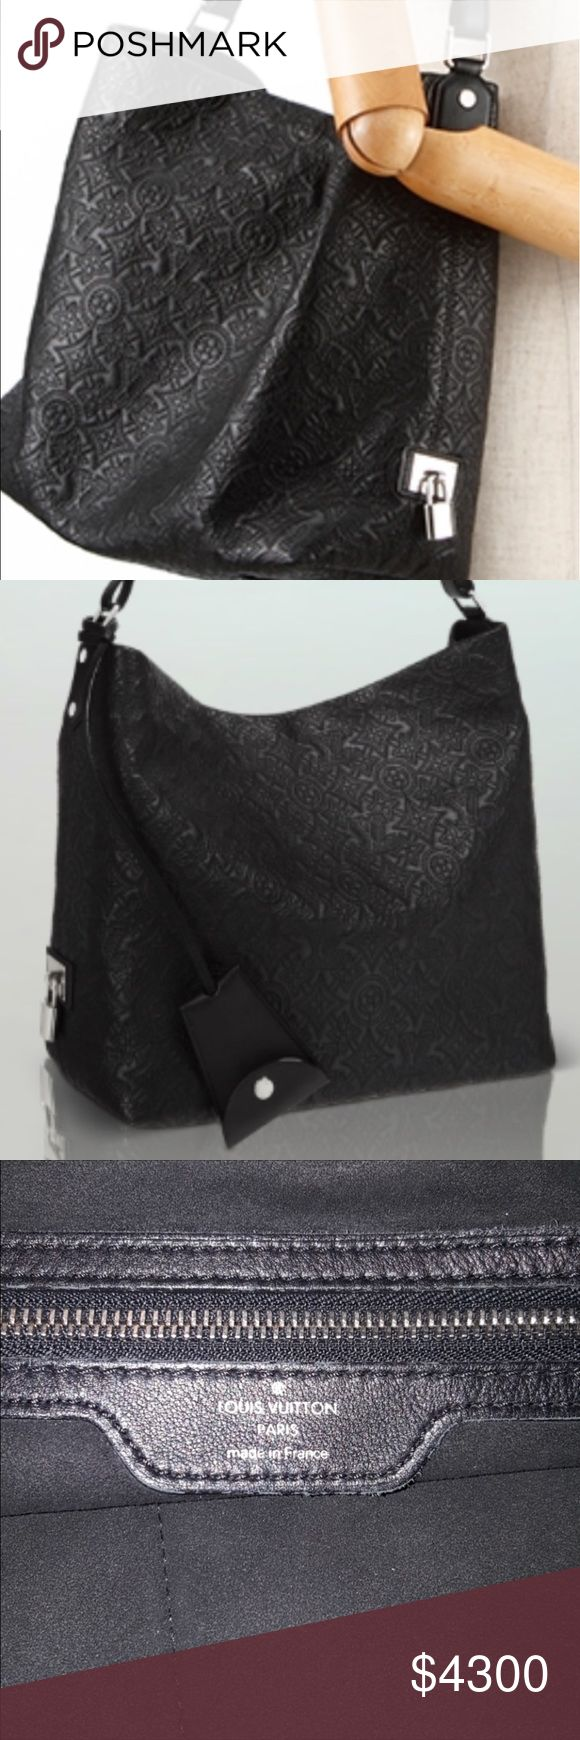 Rare- Noir Authentic Louis Vuitton Anthea HOBO GM Authentic Louis Vuitton Anthea ANTHA GM Hobo in Noir. All photos online are for taupe or PM. See size reference in last photo or 2nd listing. This is the only Black GM authentic Louis Vuitton HOBO online today for sale- Keep that in mind when making offers please - Black Anthea GM retails higher than taupe. Great condition inside and out. Has been well cared for. (Will lower price but ok to offer- not in hurry to let this baby go!) 💎I trade…